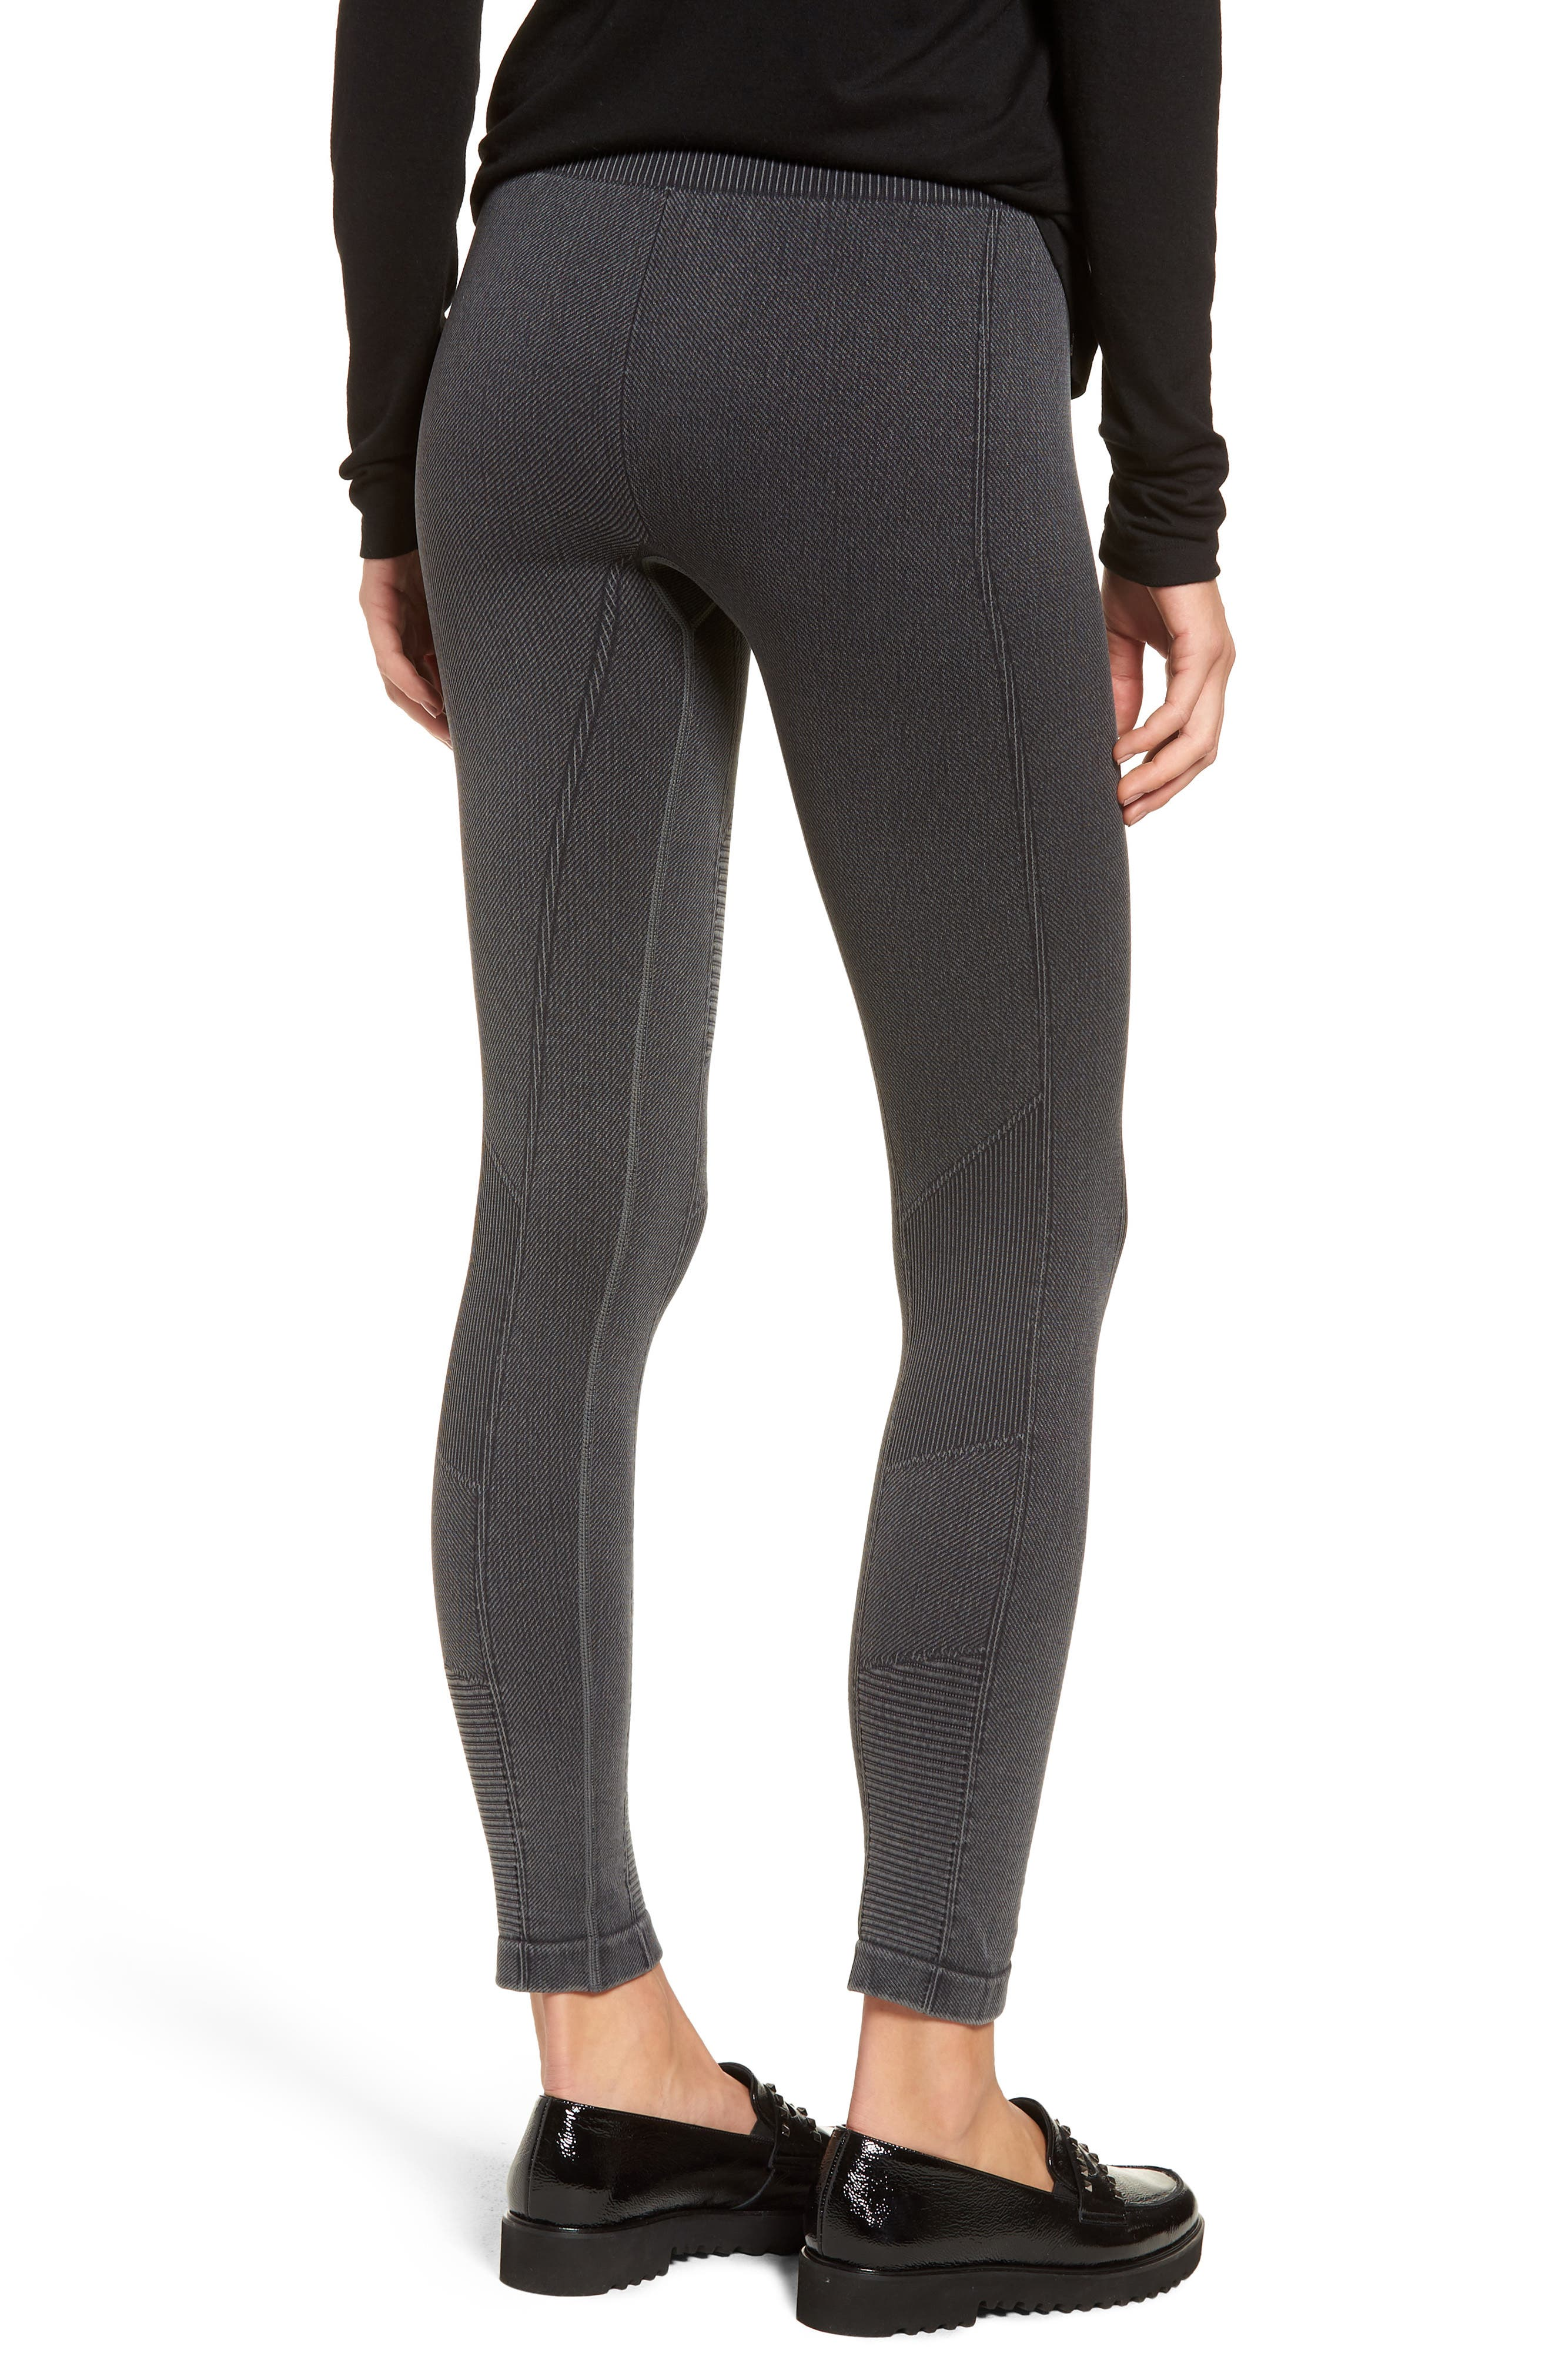 Washed Moto Seamless Skimmer Leggings,                             Alternate thumbnail 2, color,                             001